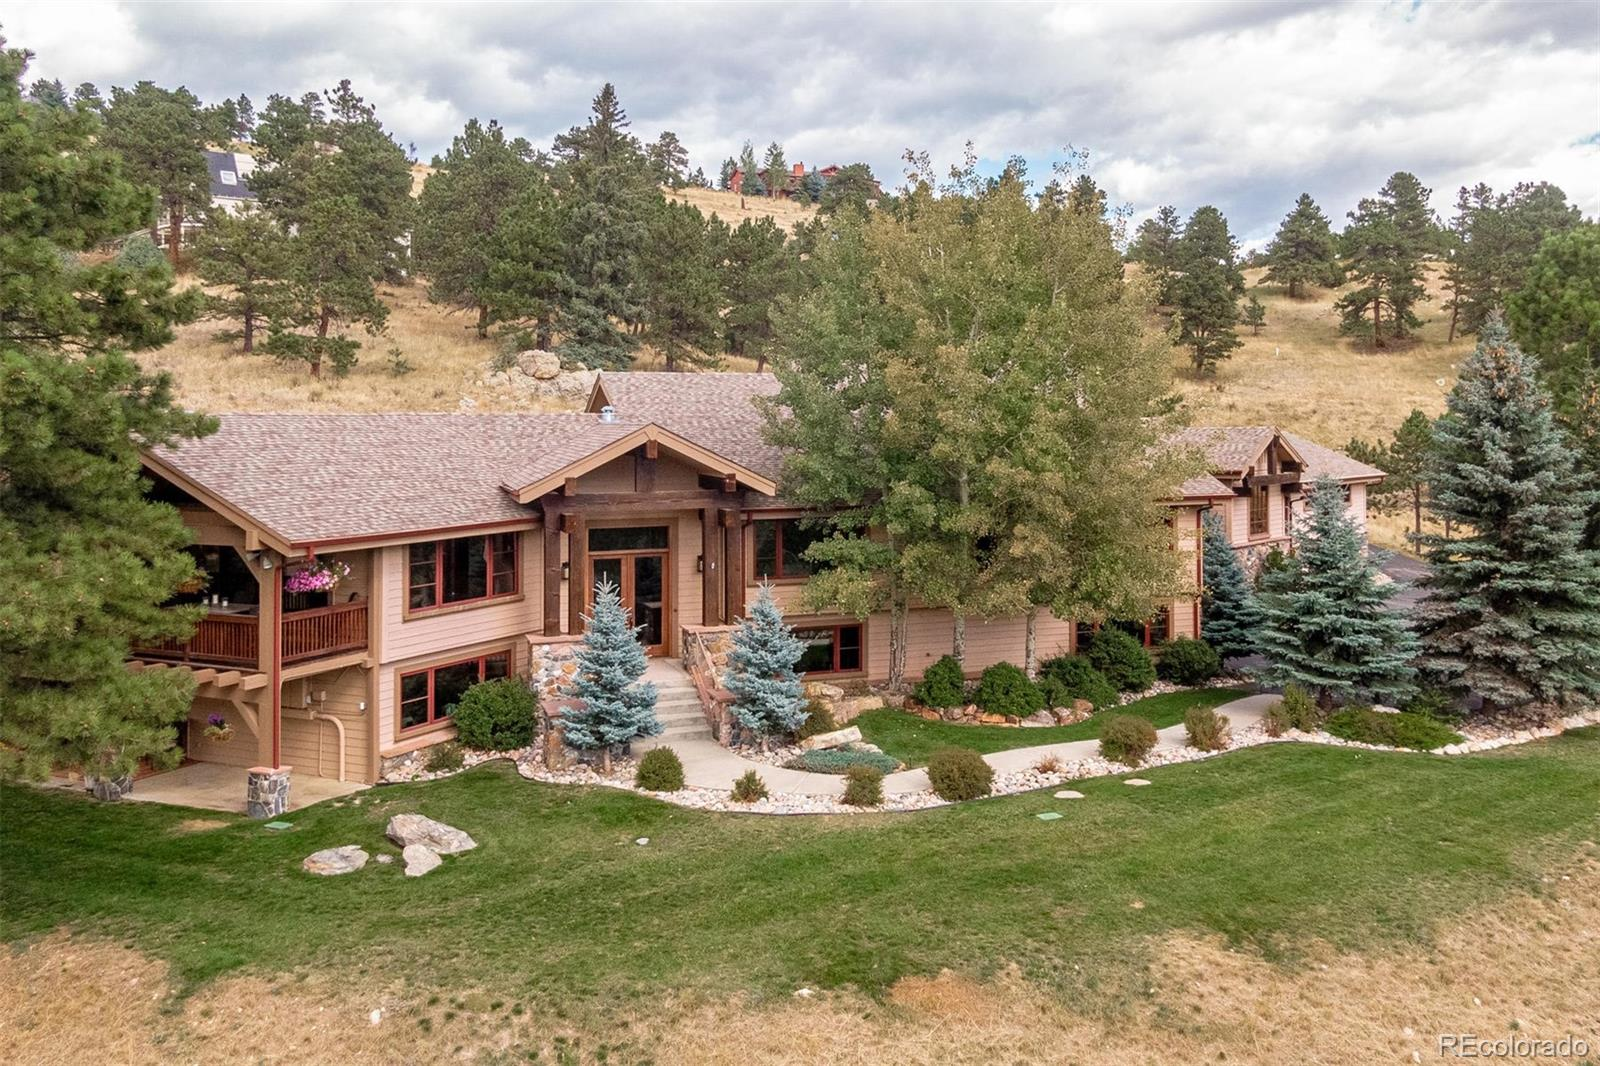 497 Meadow Vista Drive, Evergreen, CO 80439 - Evergreen, CO real estate listing